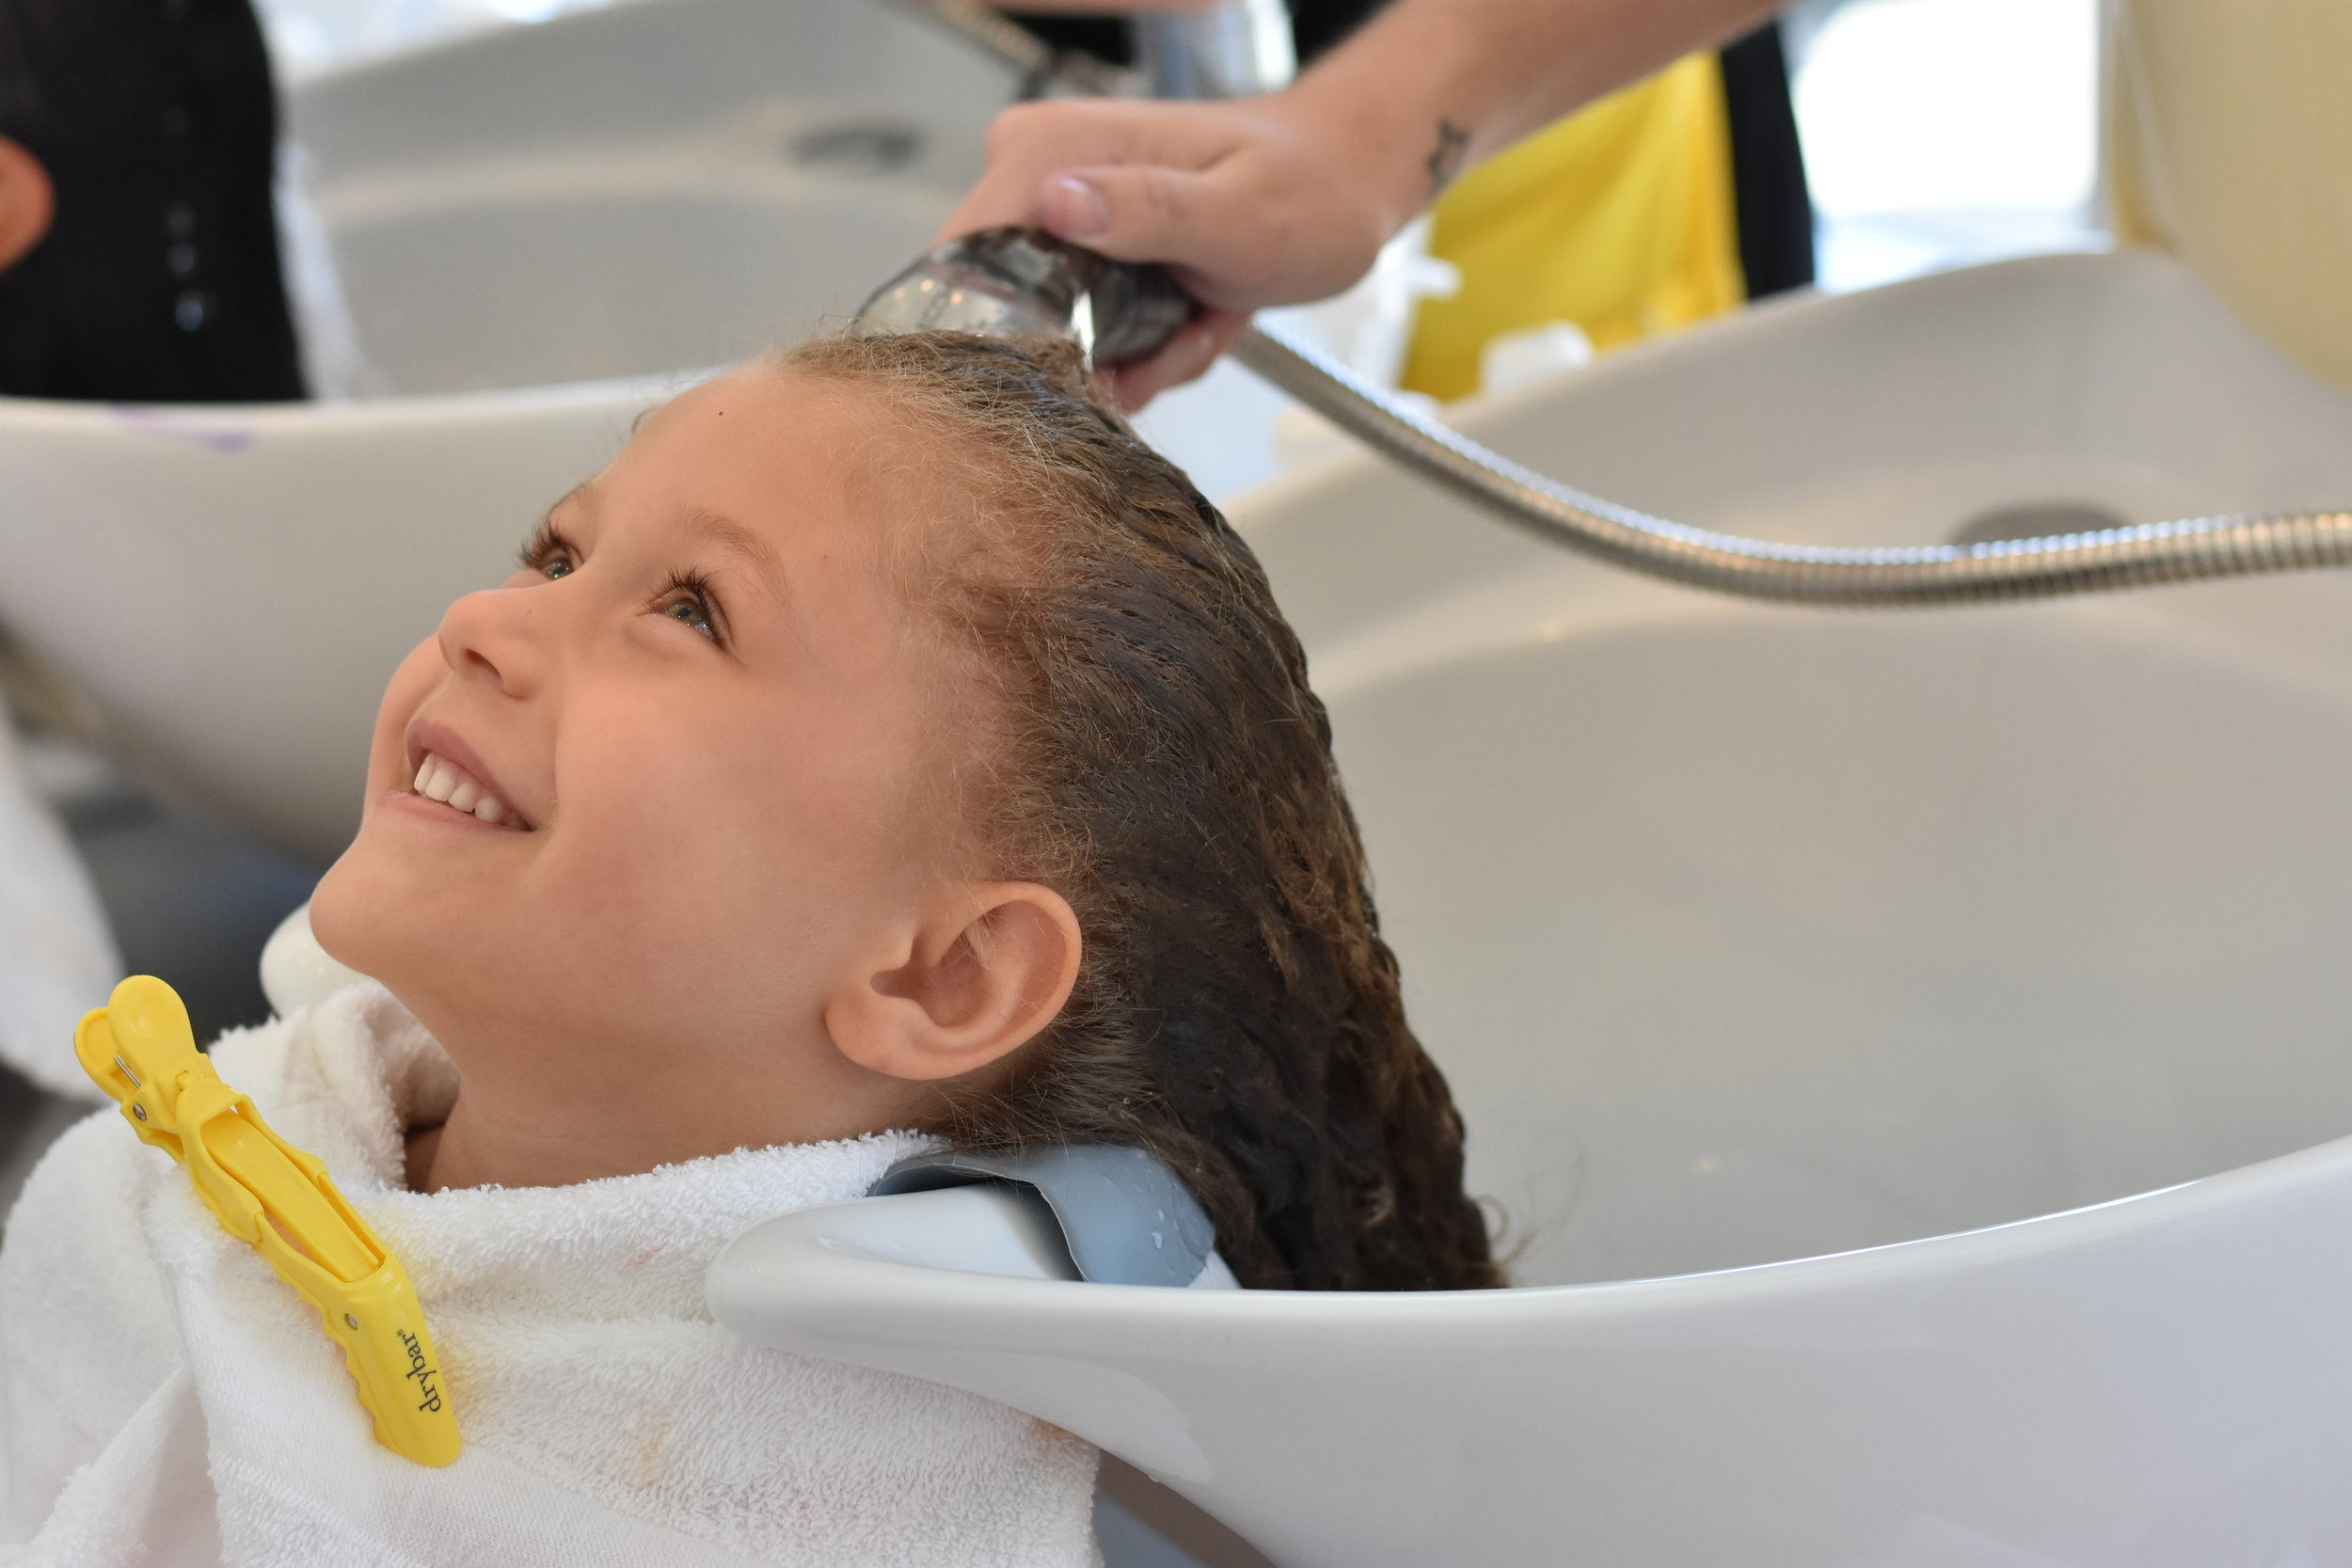 Picture of girl getting her hair shampooed at DryBar salon.